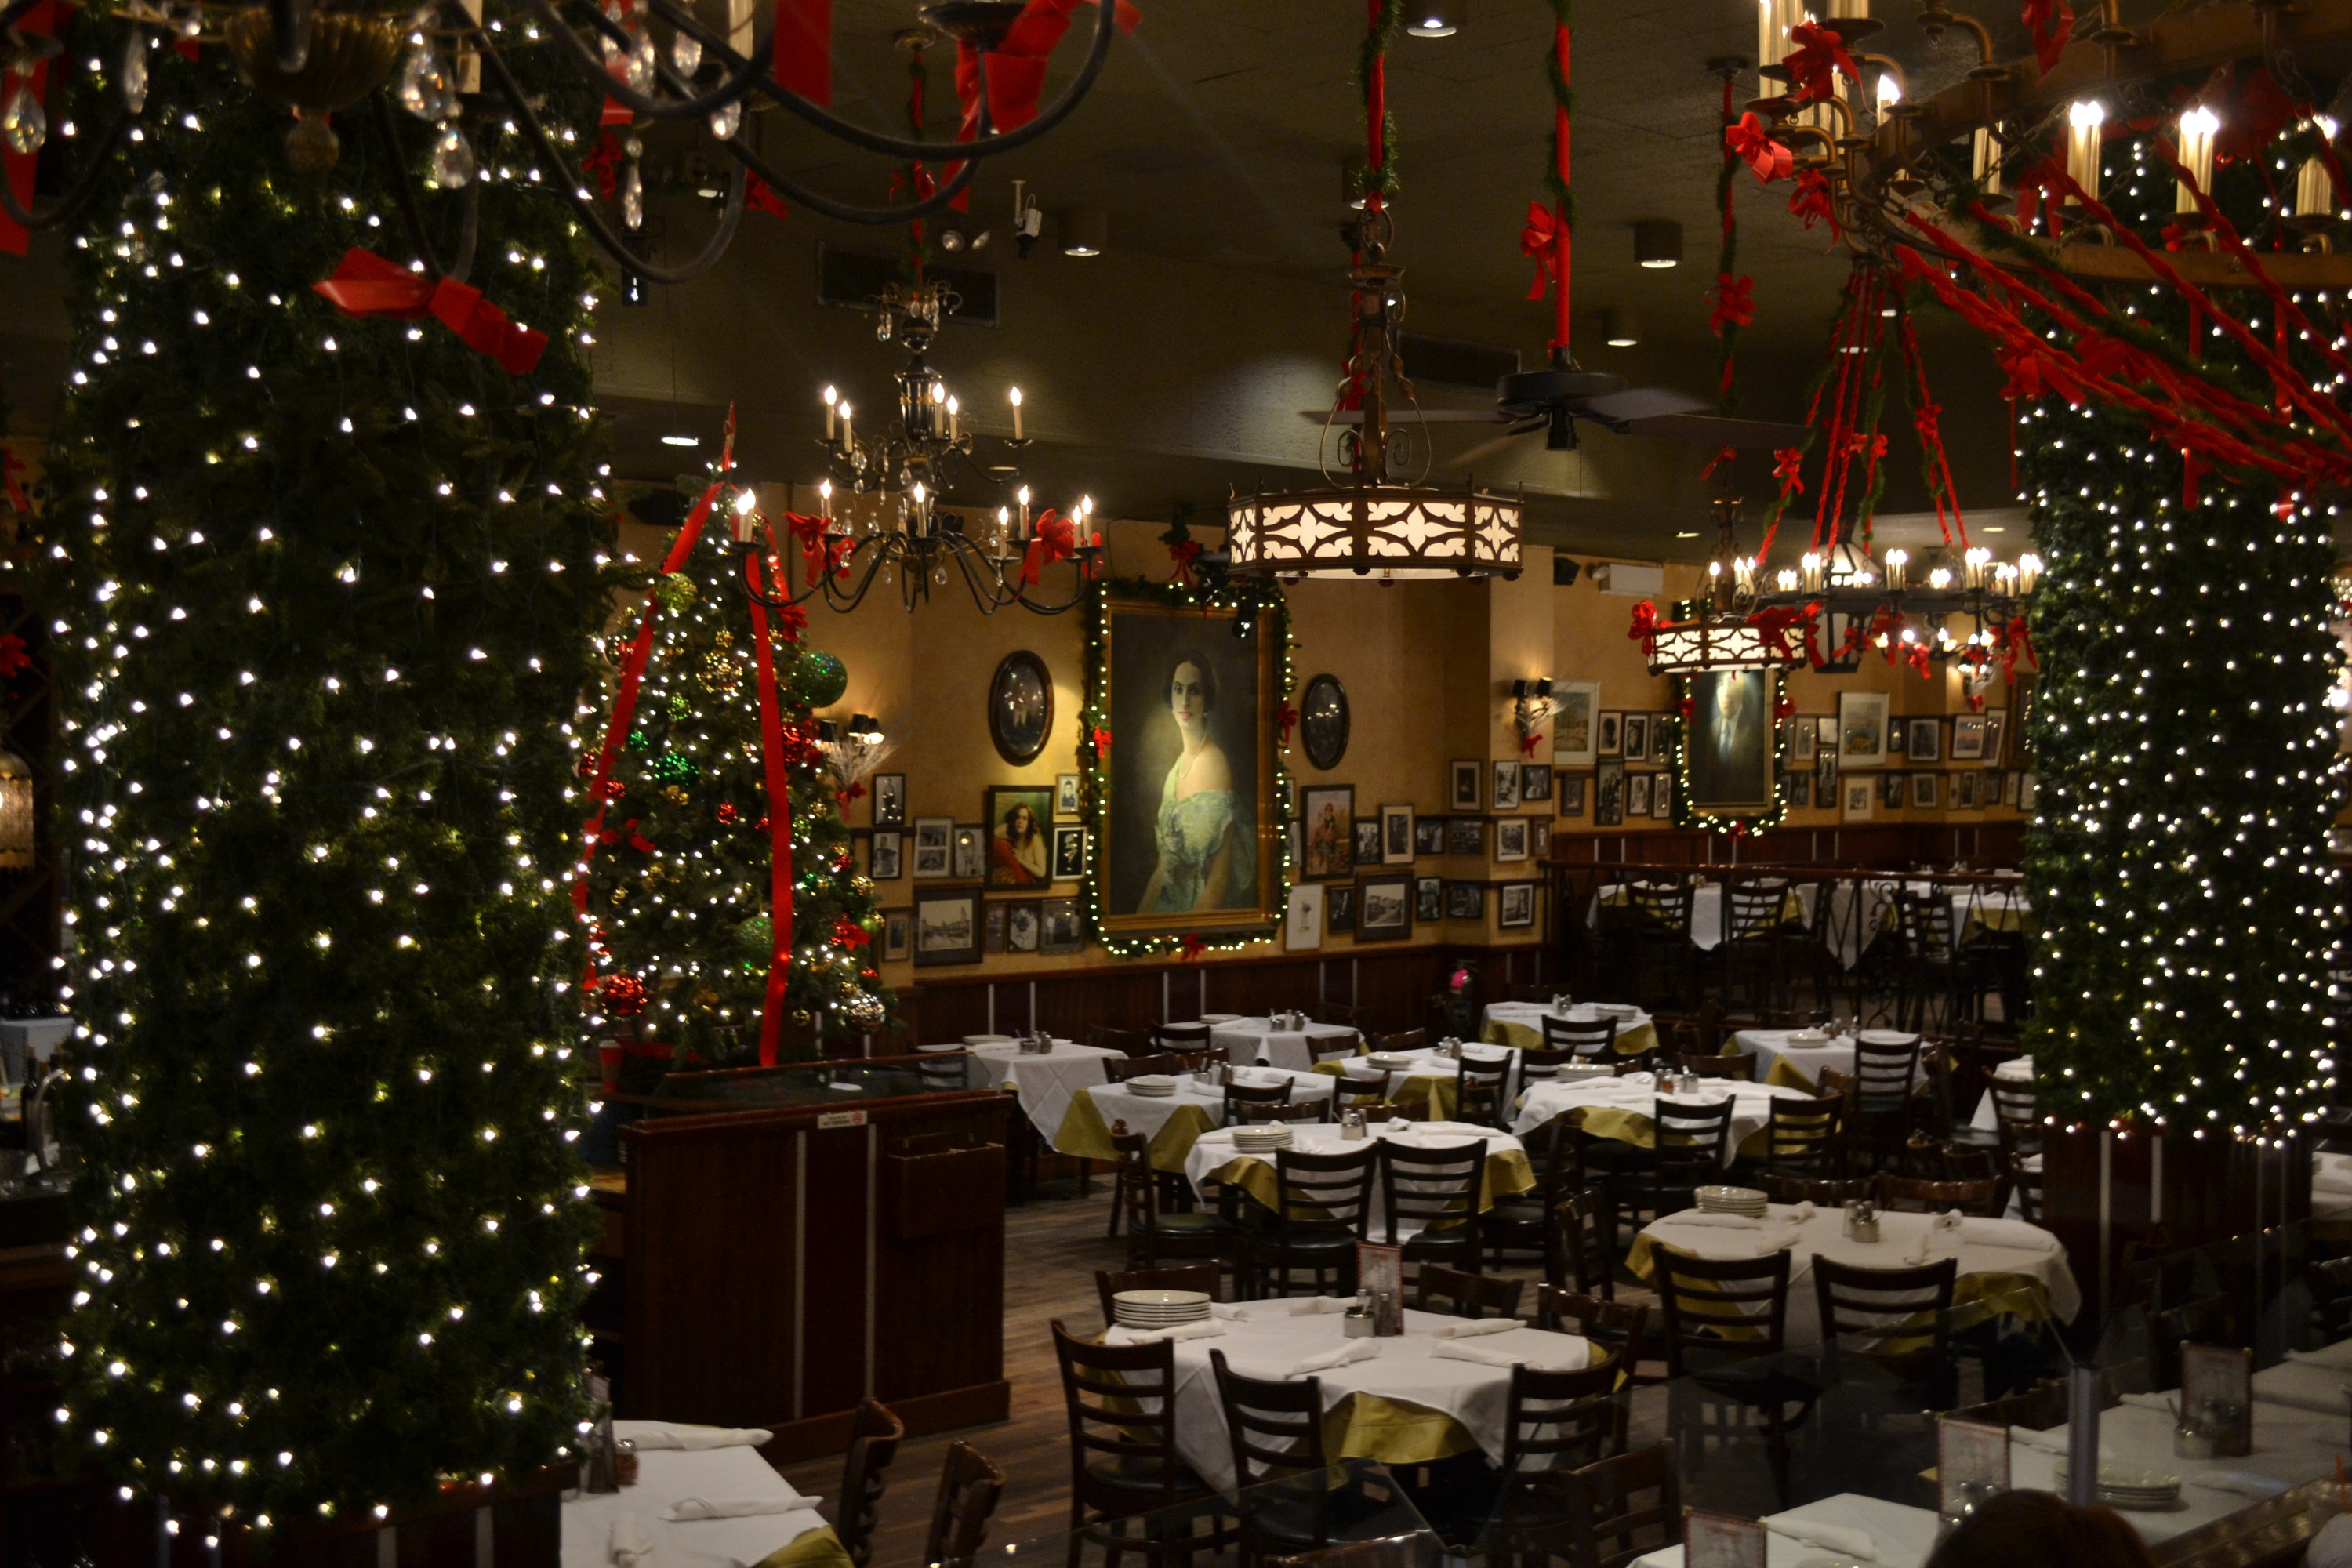 Christmas Dinner Restaurants  14 Spots to Eat Christmas Dinner in NYC This Holiday Season